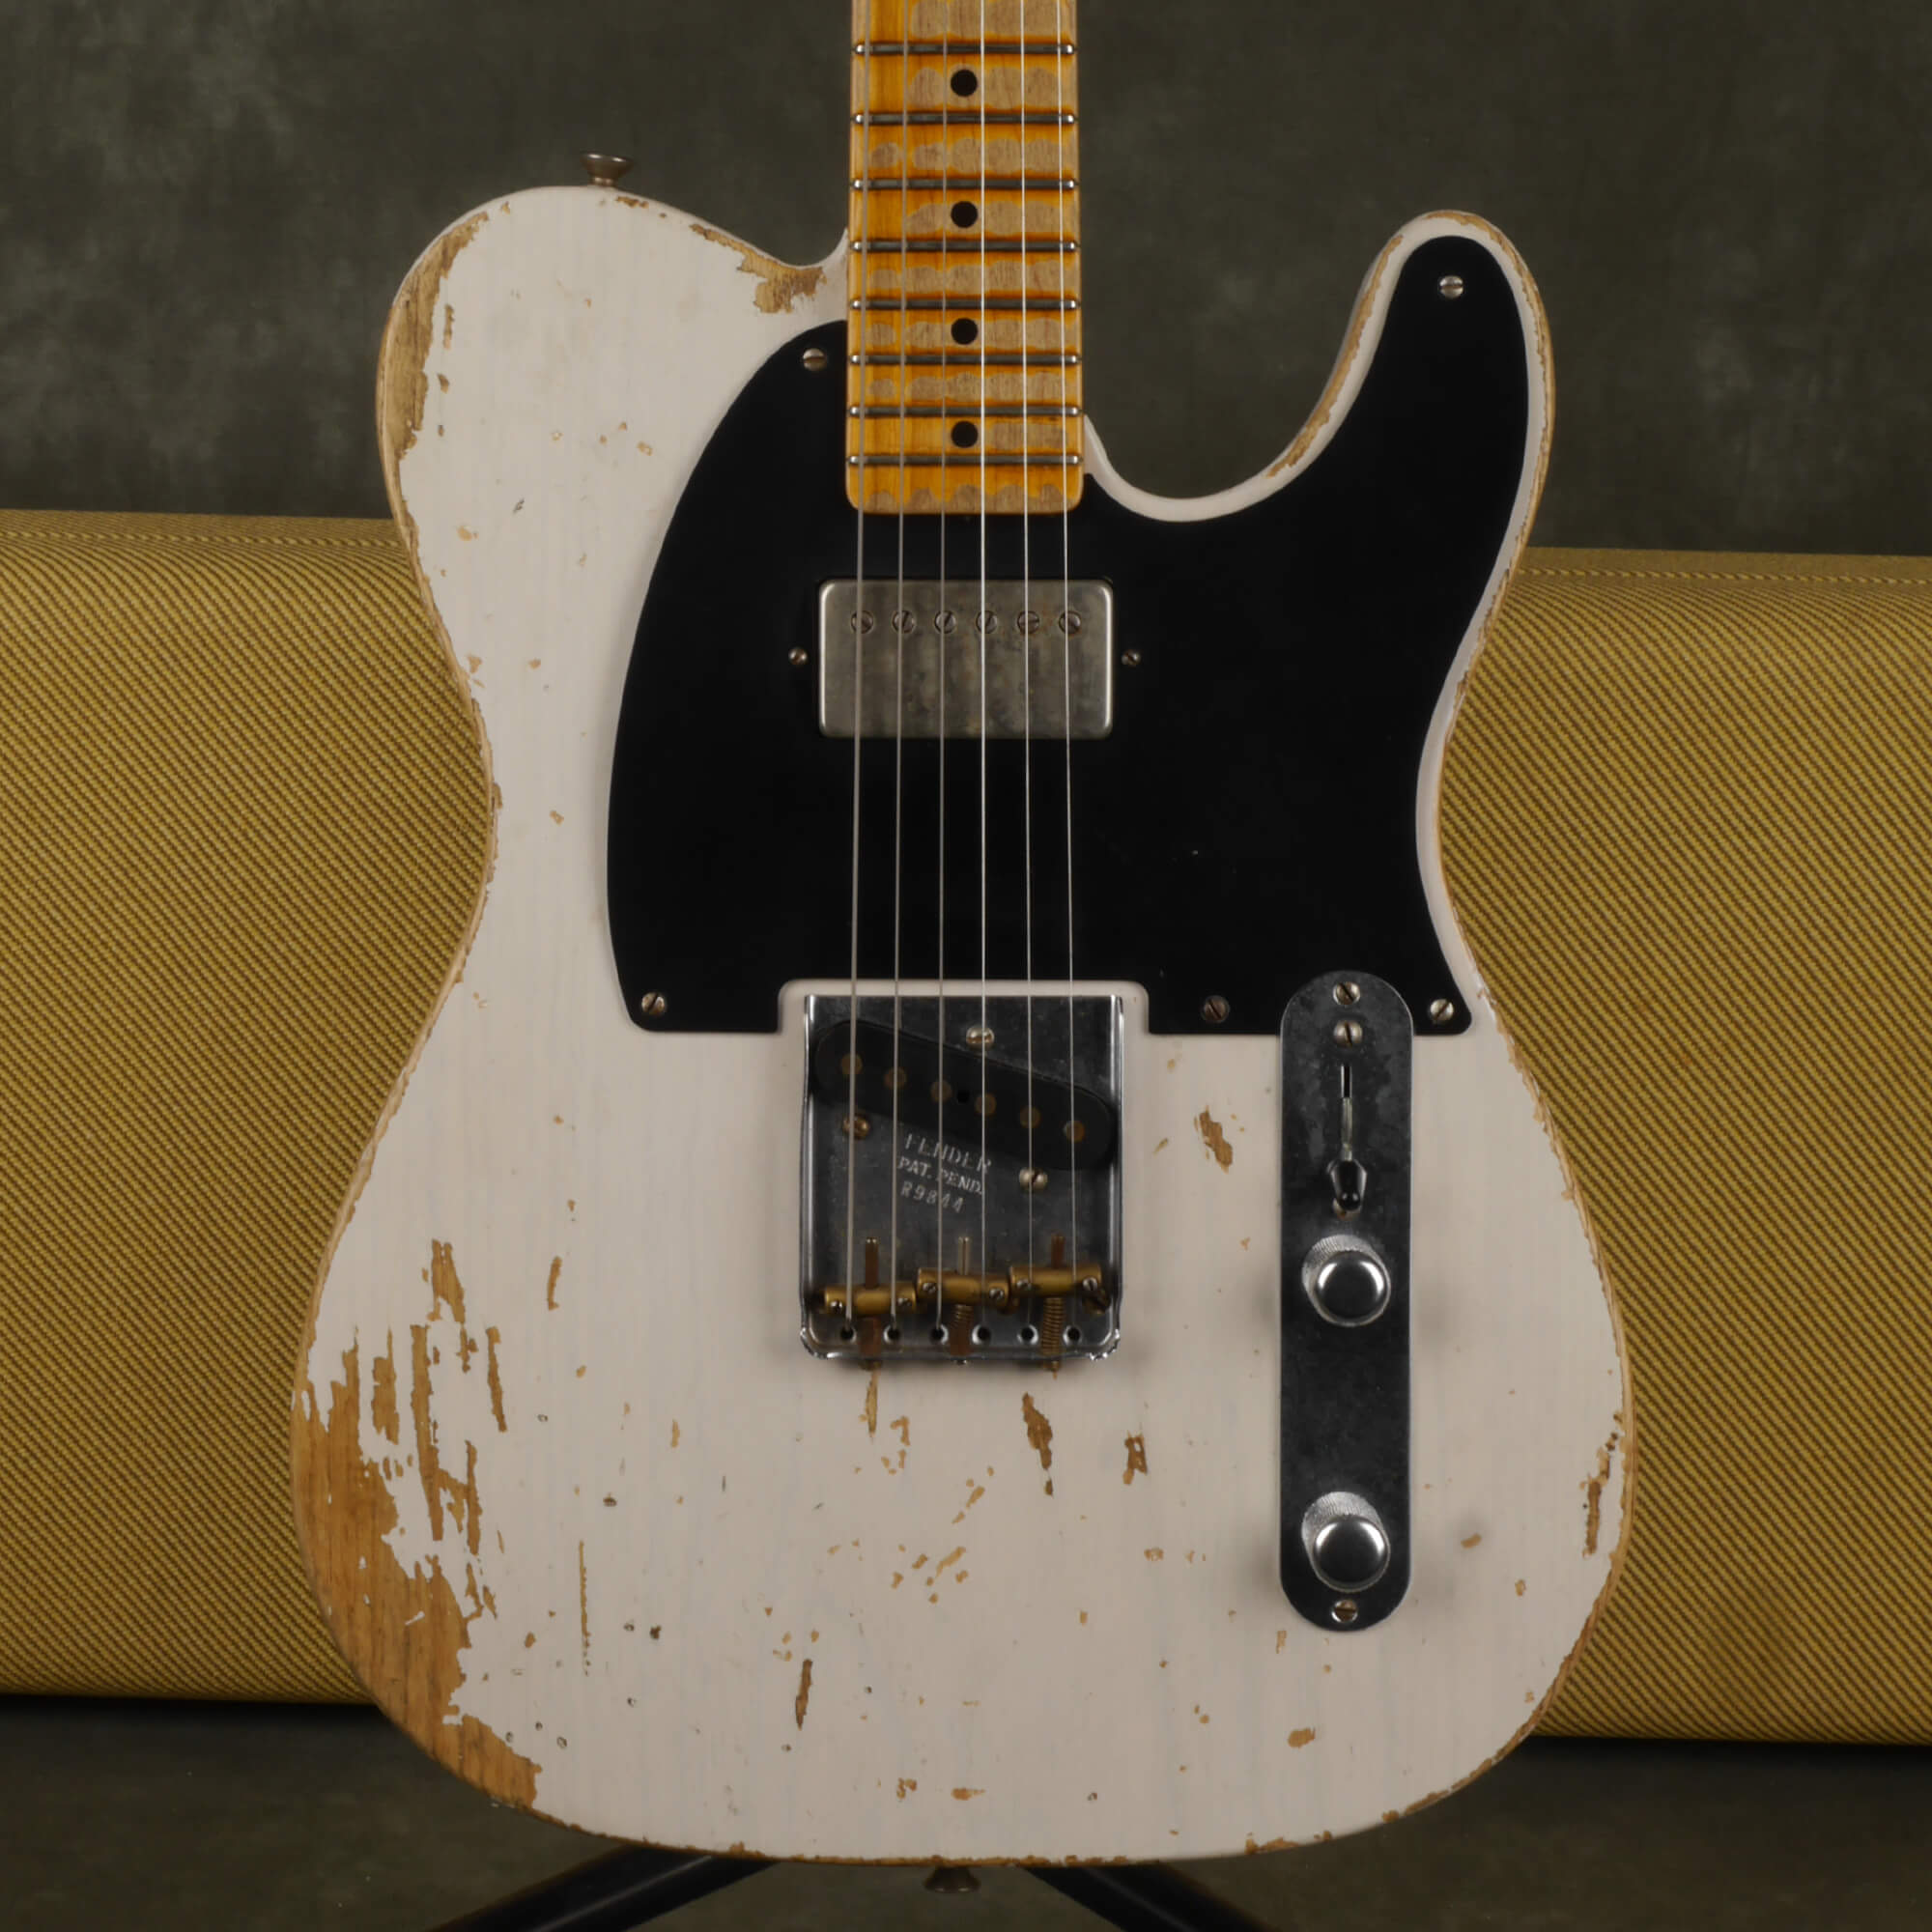 Fender Custom Shop Telecaster Electric Guitar, Relic - White w/Case - 2nd Hand